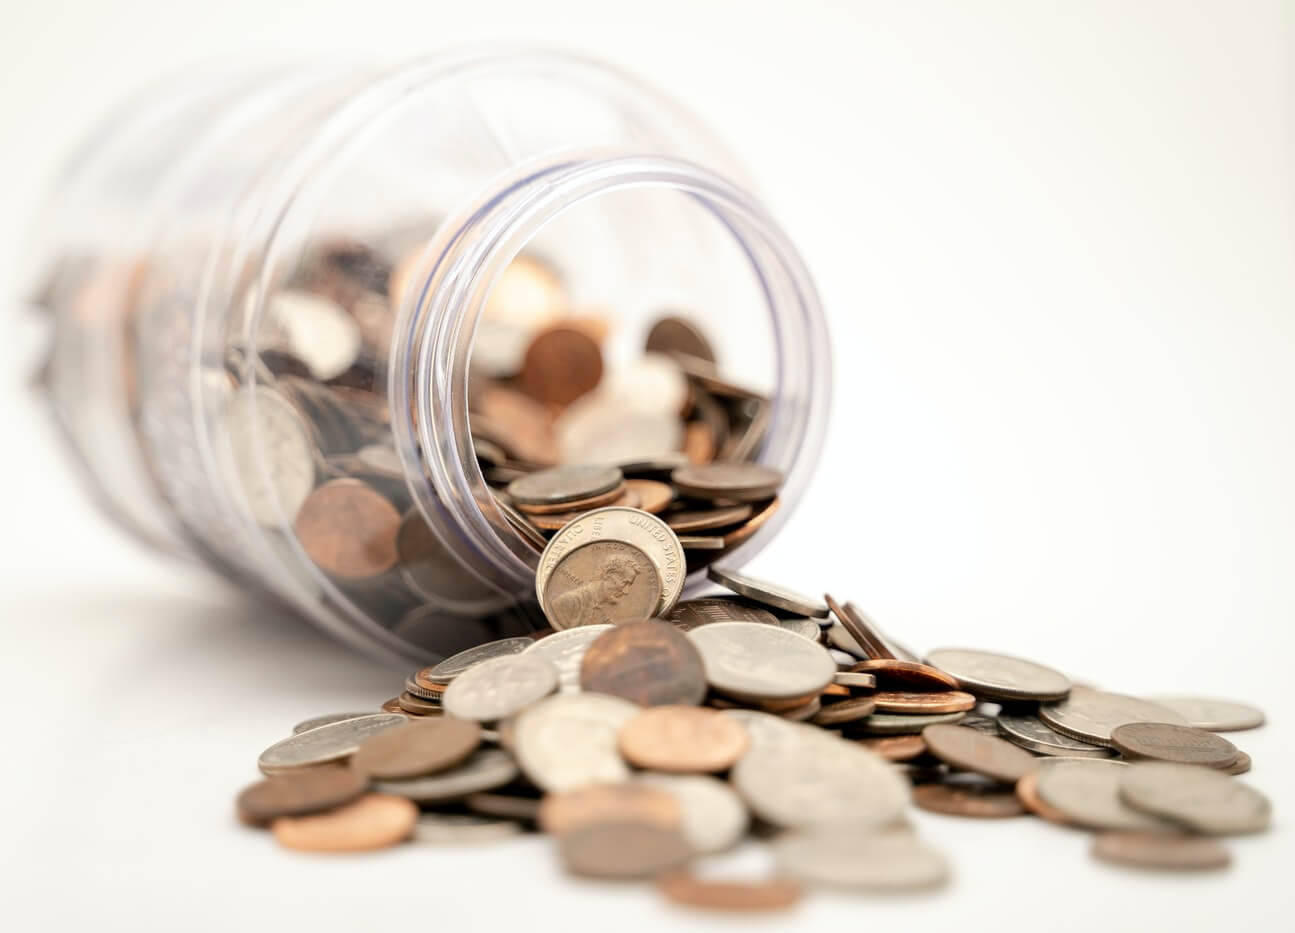 A jar holding different coins. It is important to save money for retirement